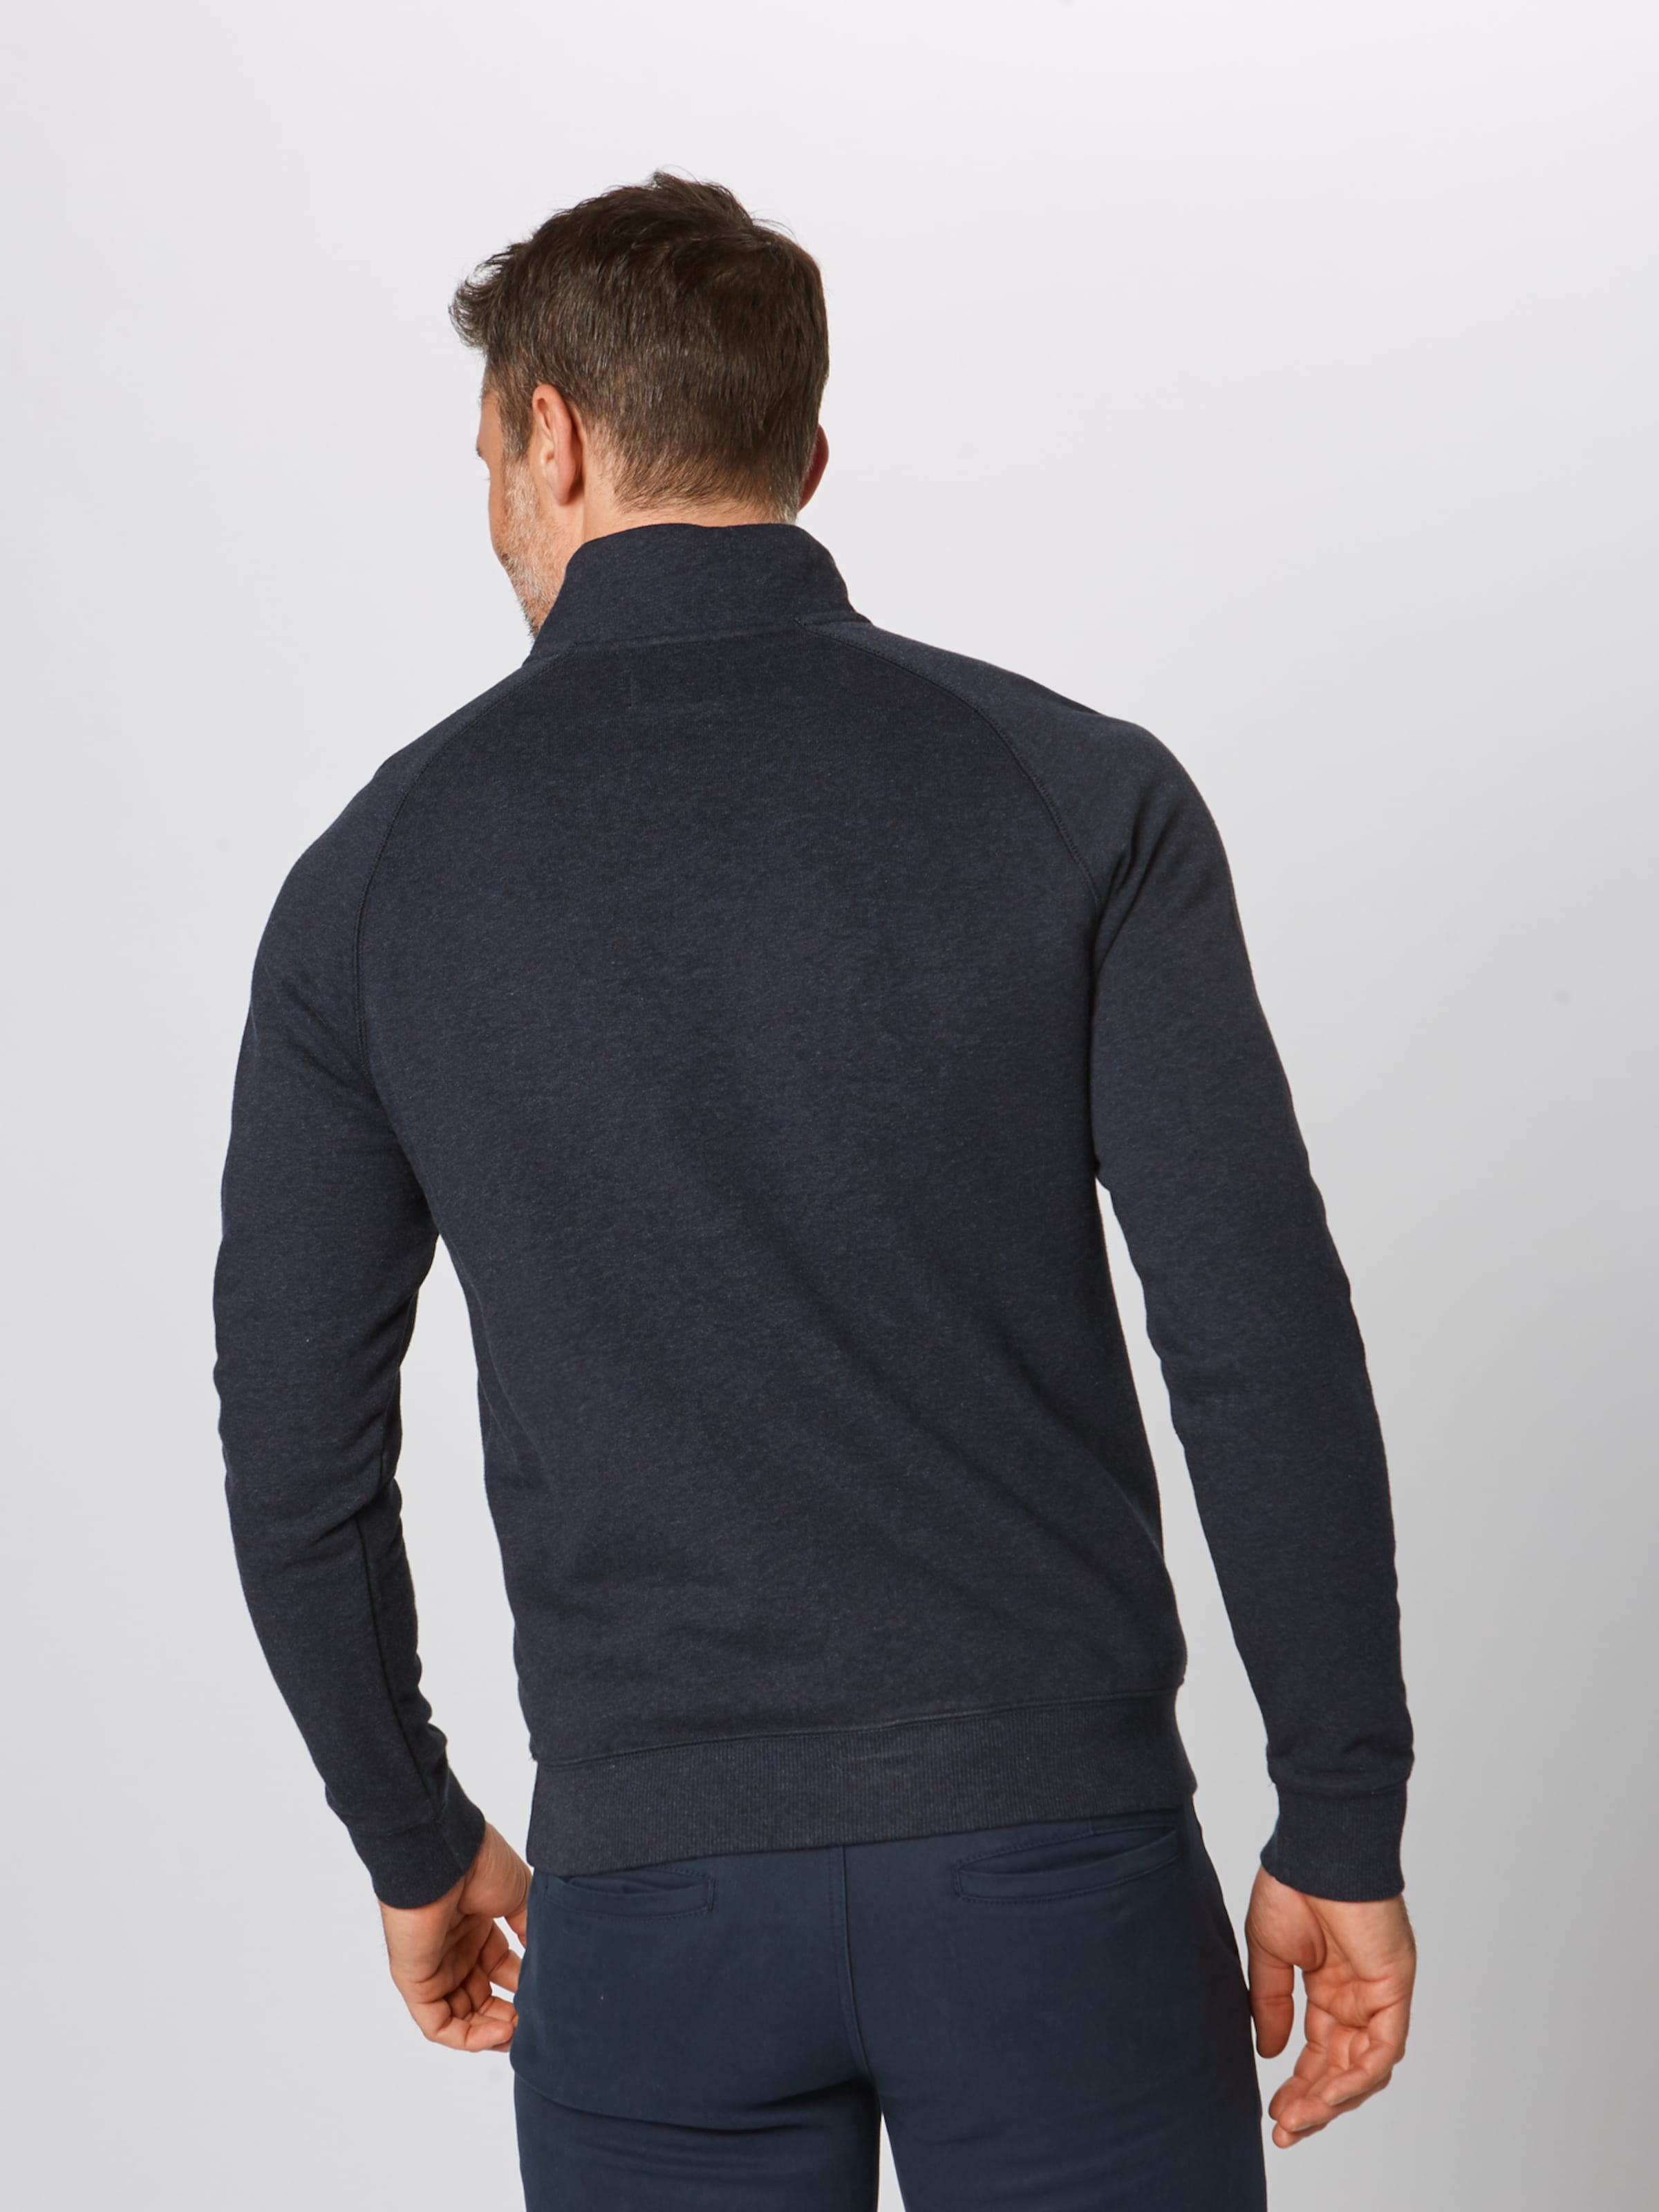 1 Sweatshirt 4 Navy Farah In 'jim Zip' bvmIyYf6g7